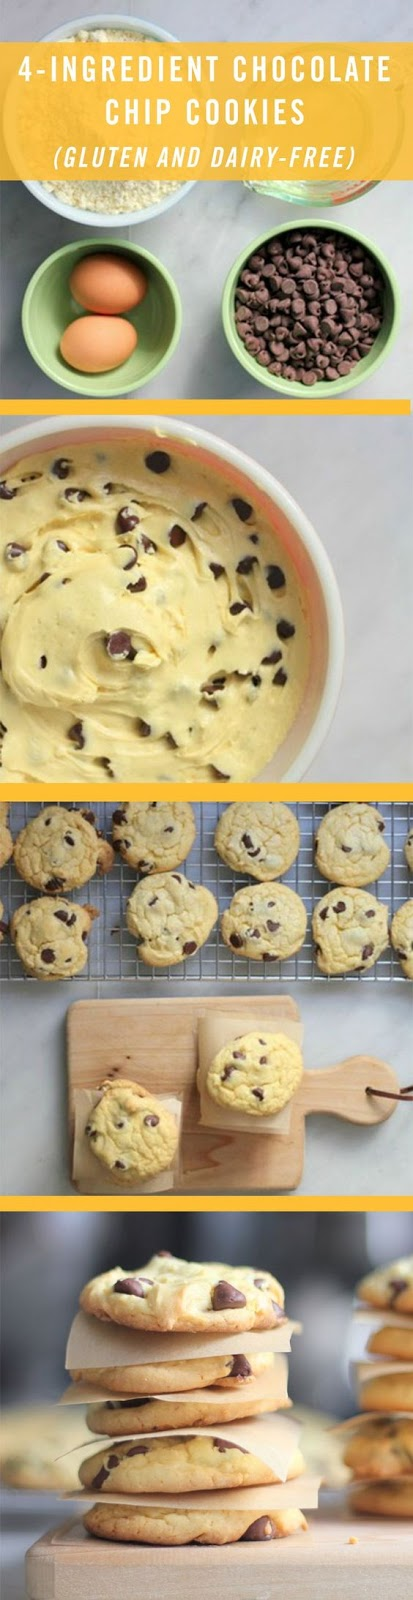 These 4-Ingredient Chocolate Chip Cookies are allergy-free and made with ingredients you already have in your kitchen.